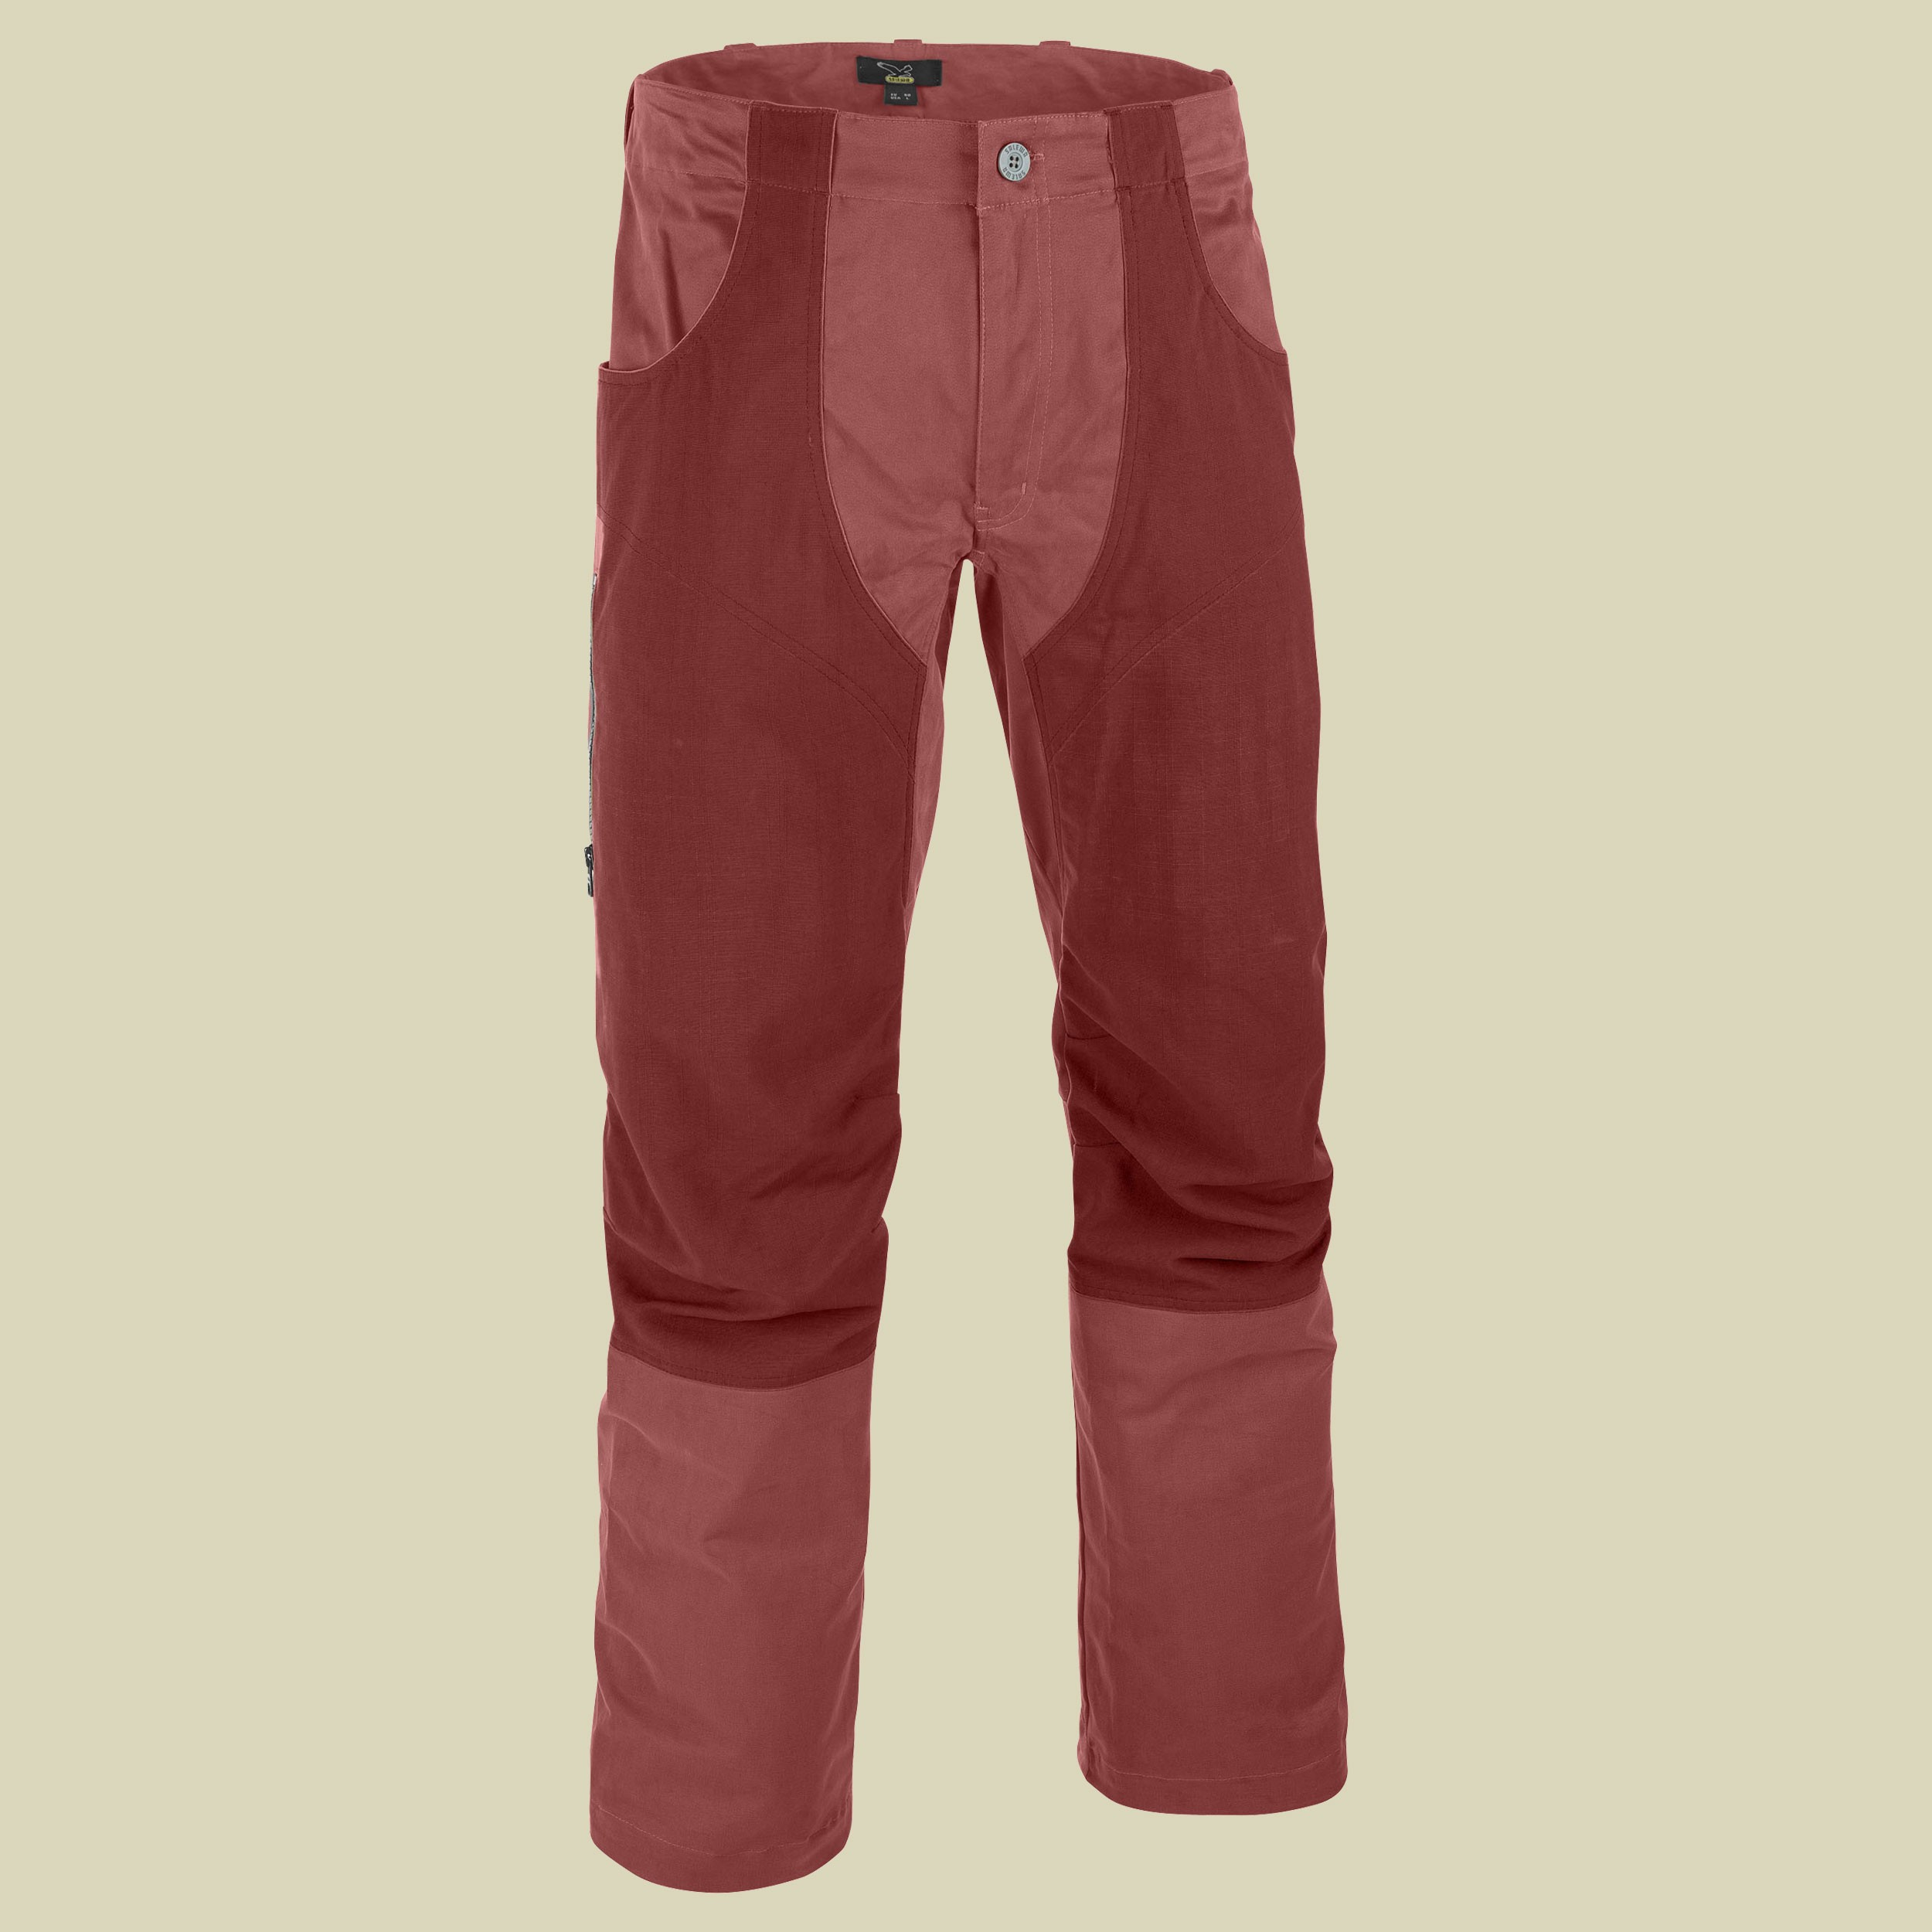 Hubble 3 CO Pant Men